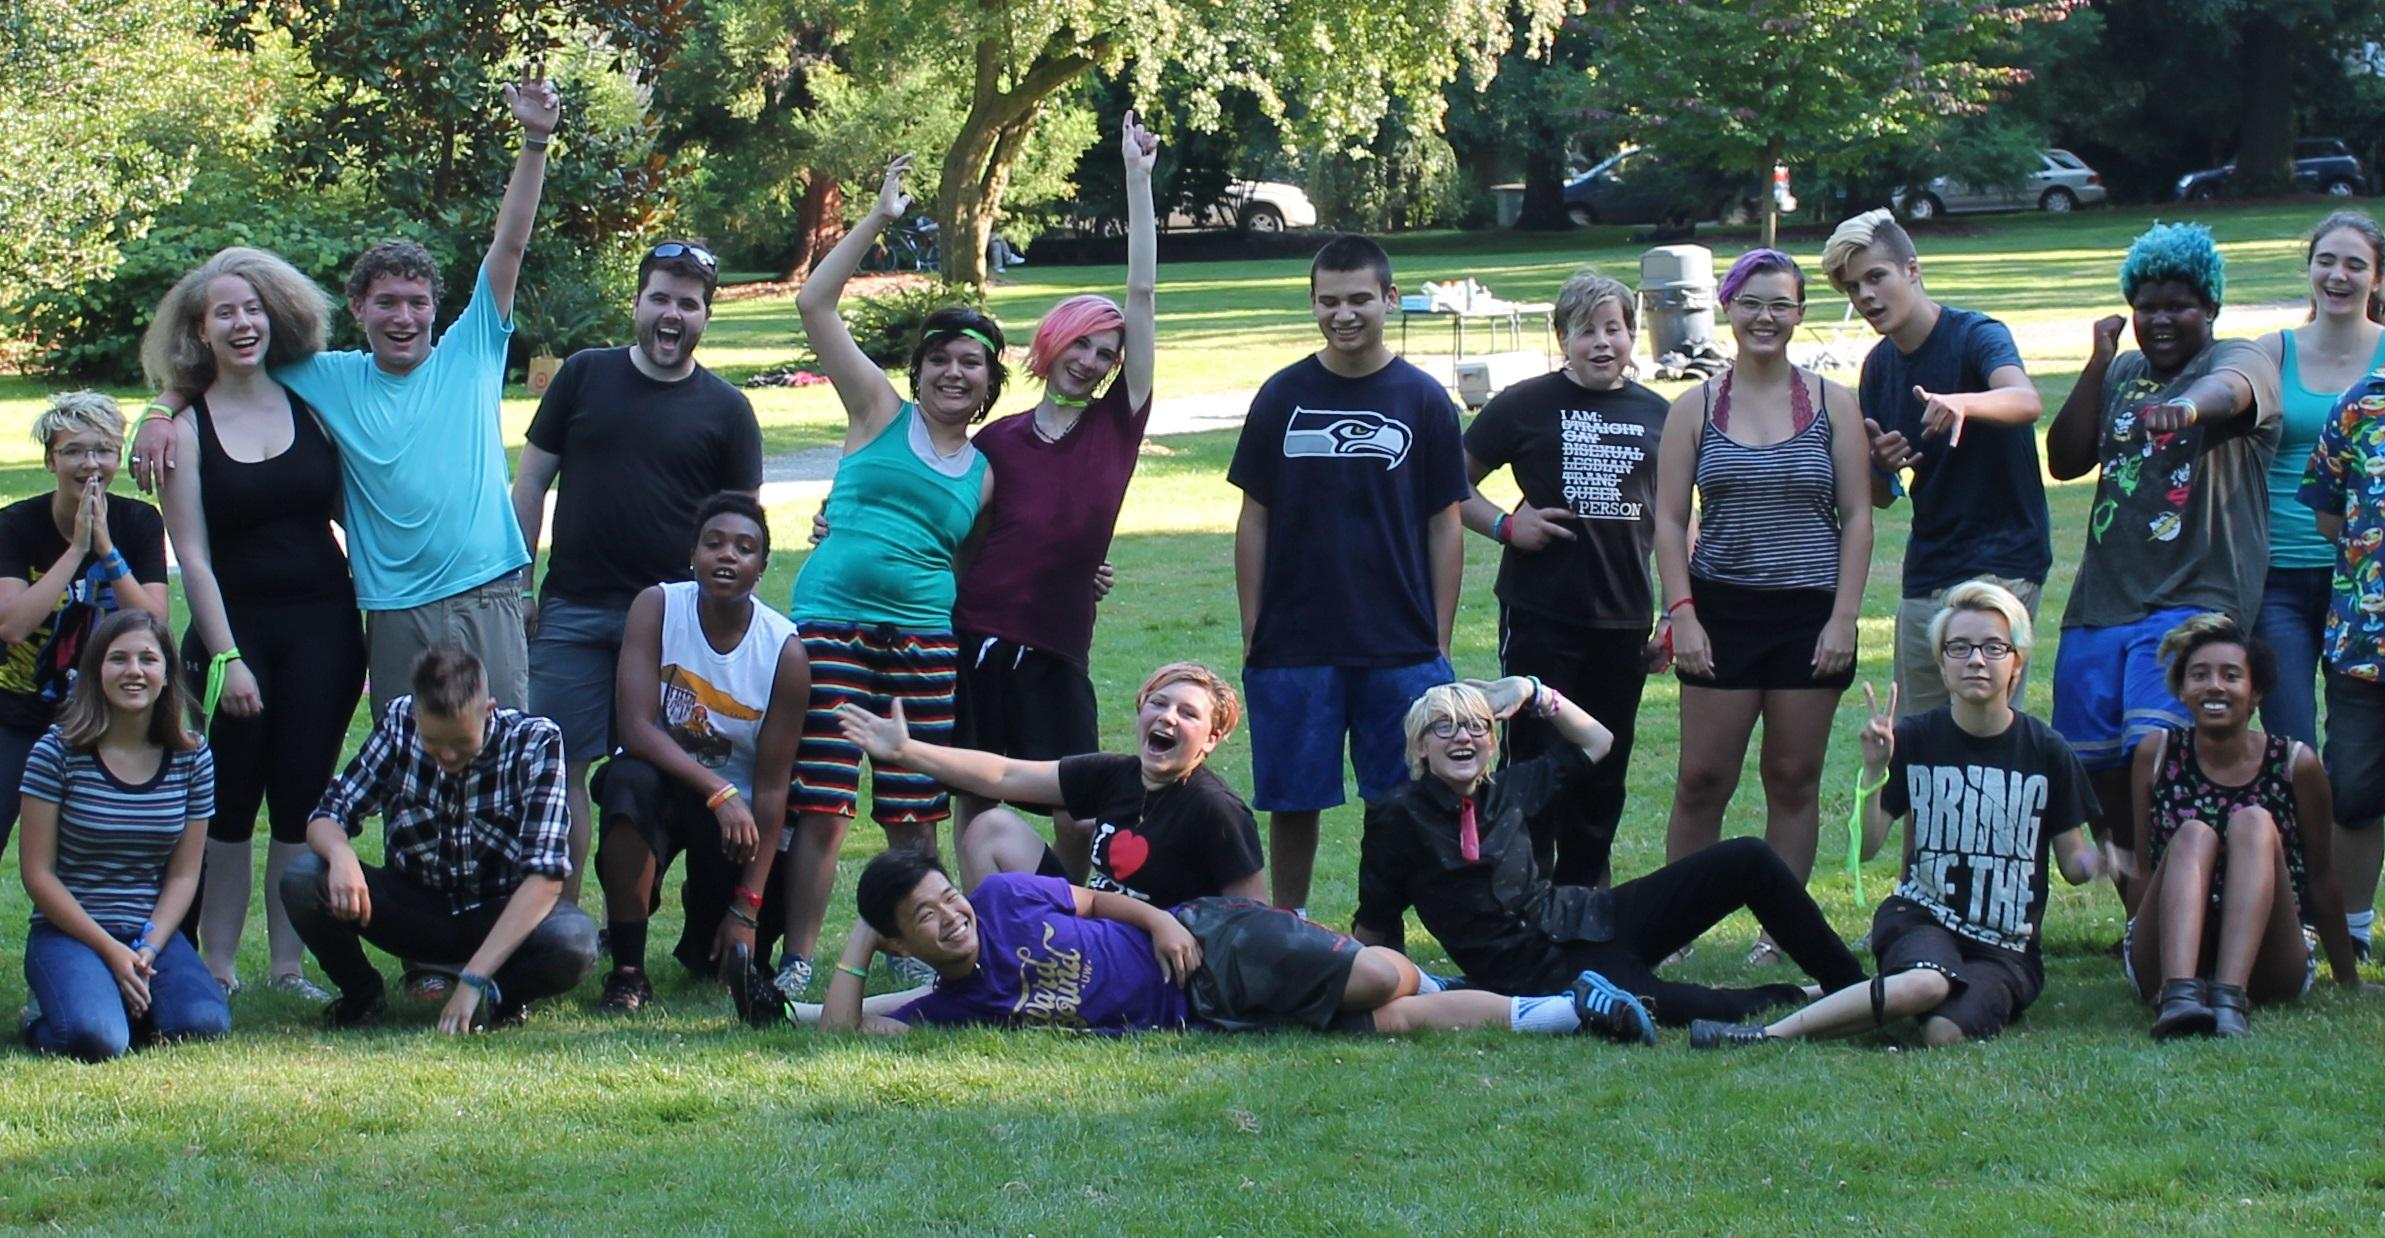 Caption: Lambert House, Summer 2016, just after a water balloon fight., Credit: KUOW PHOTO/AMY STYER